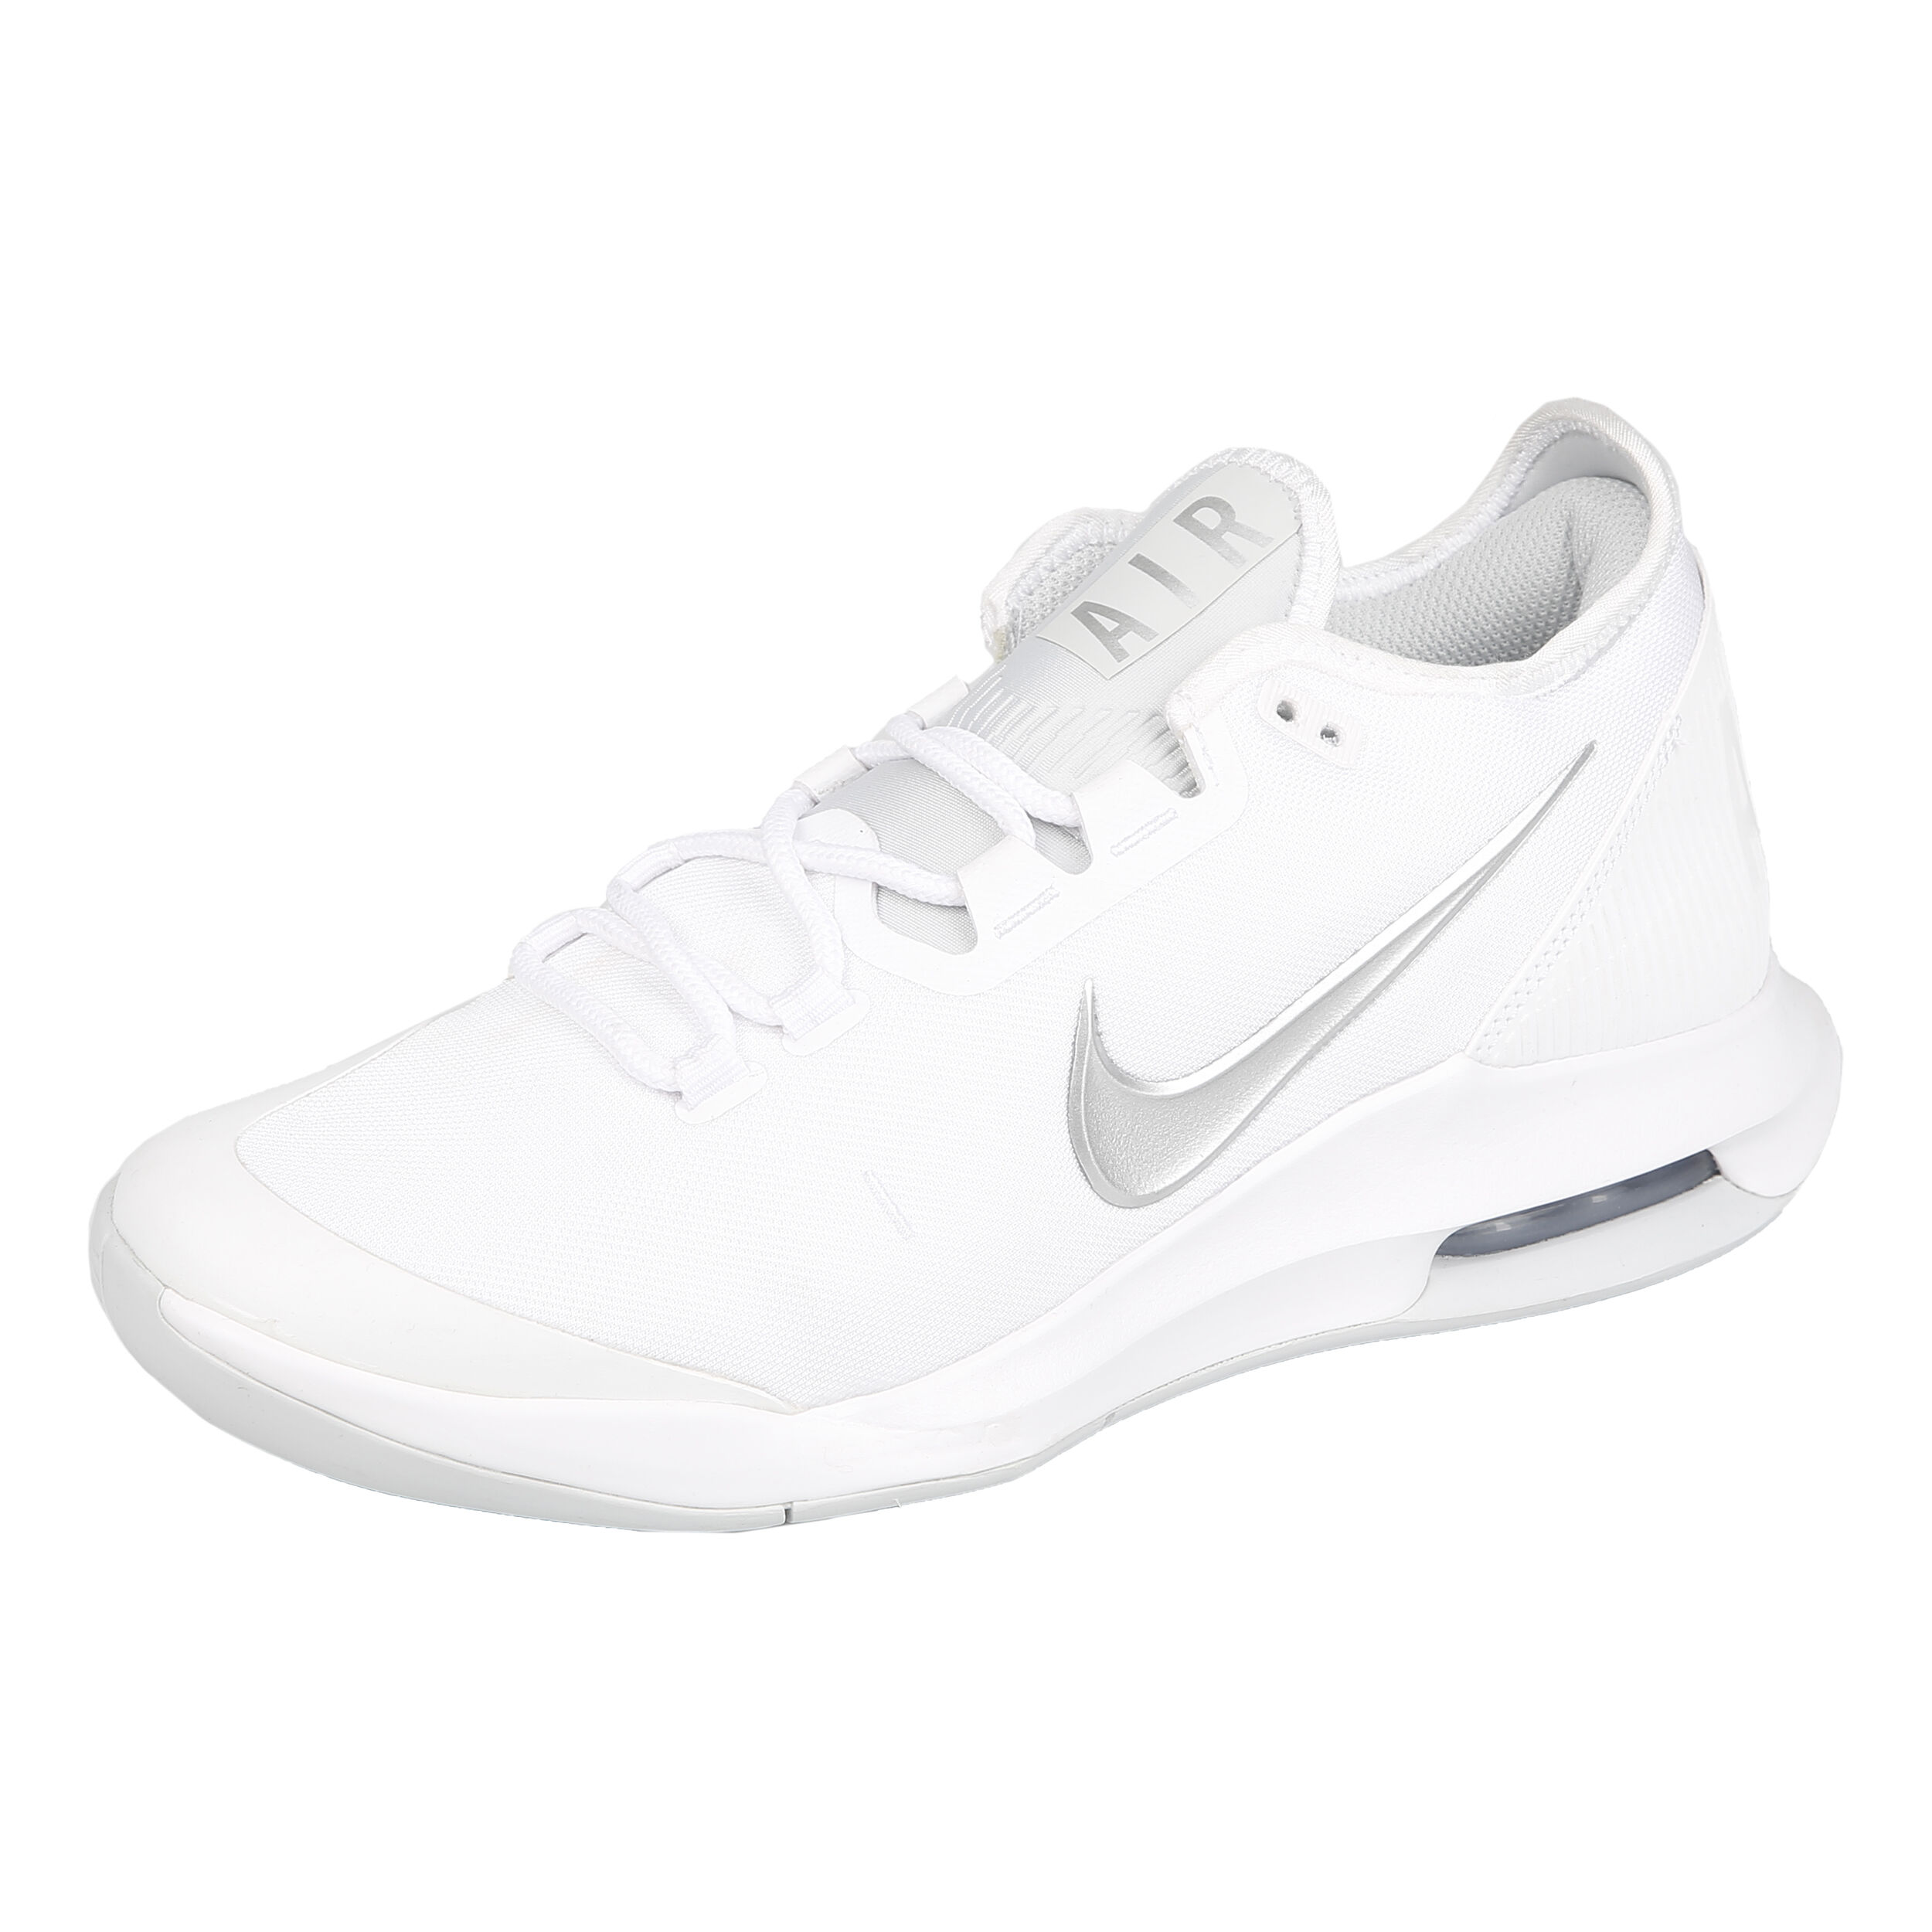 Air Max Wildcard Zapatilla Todas Las Superficies Mujeres Blanco, Pla